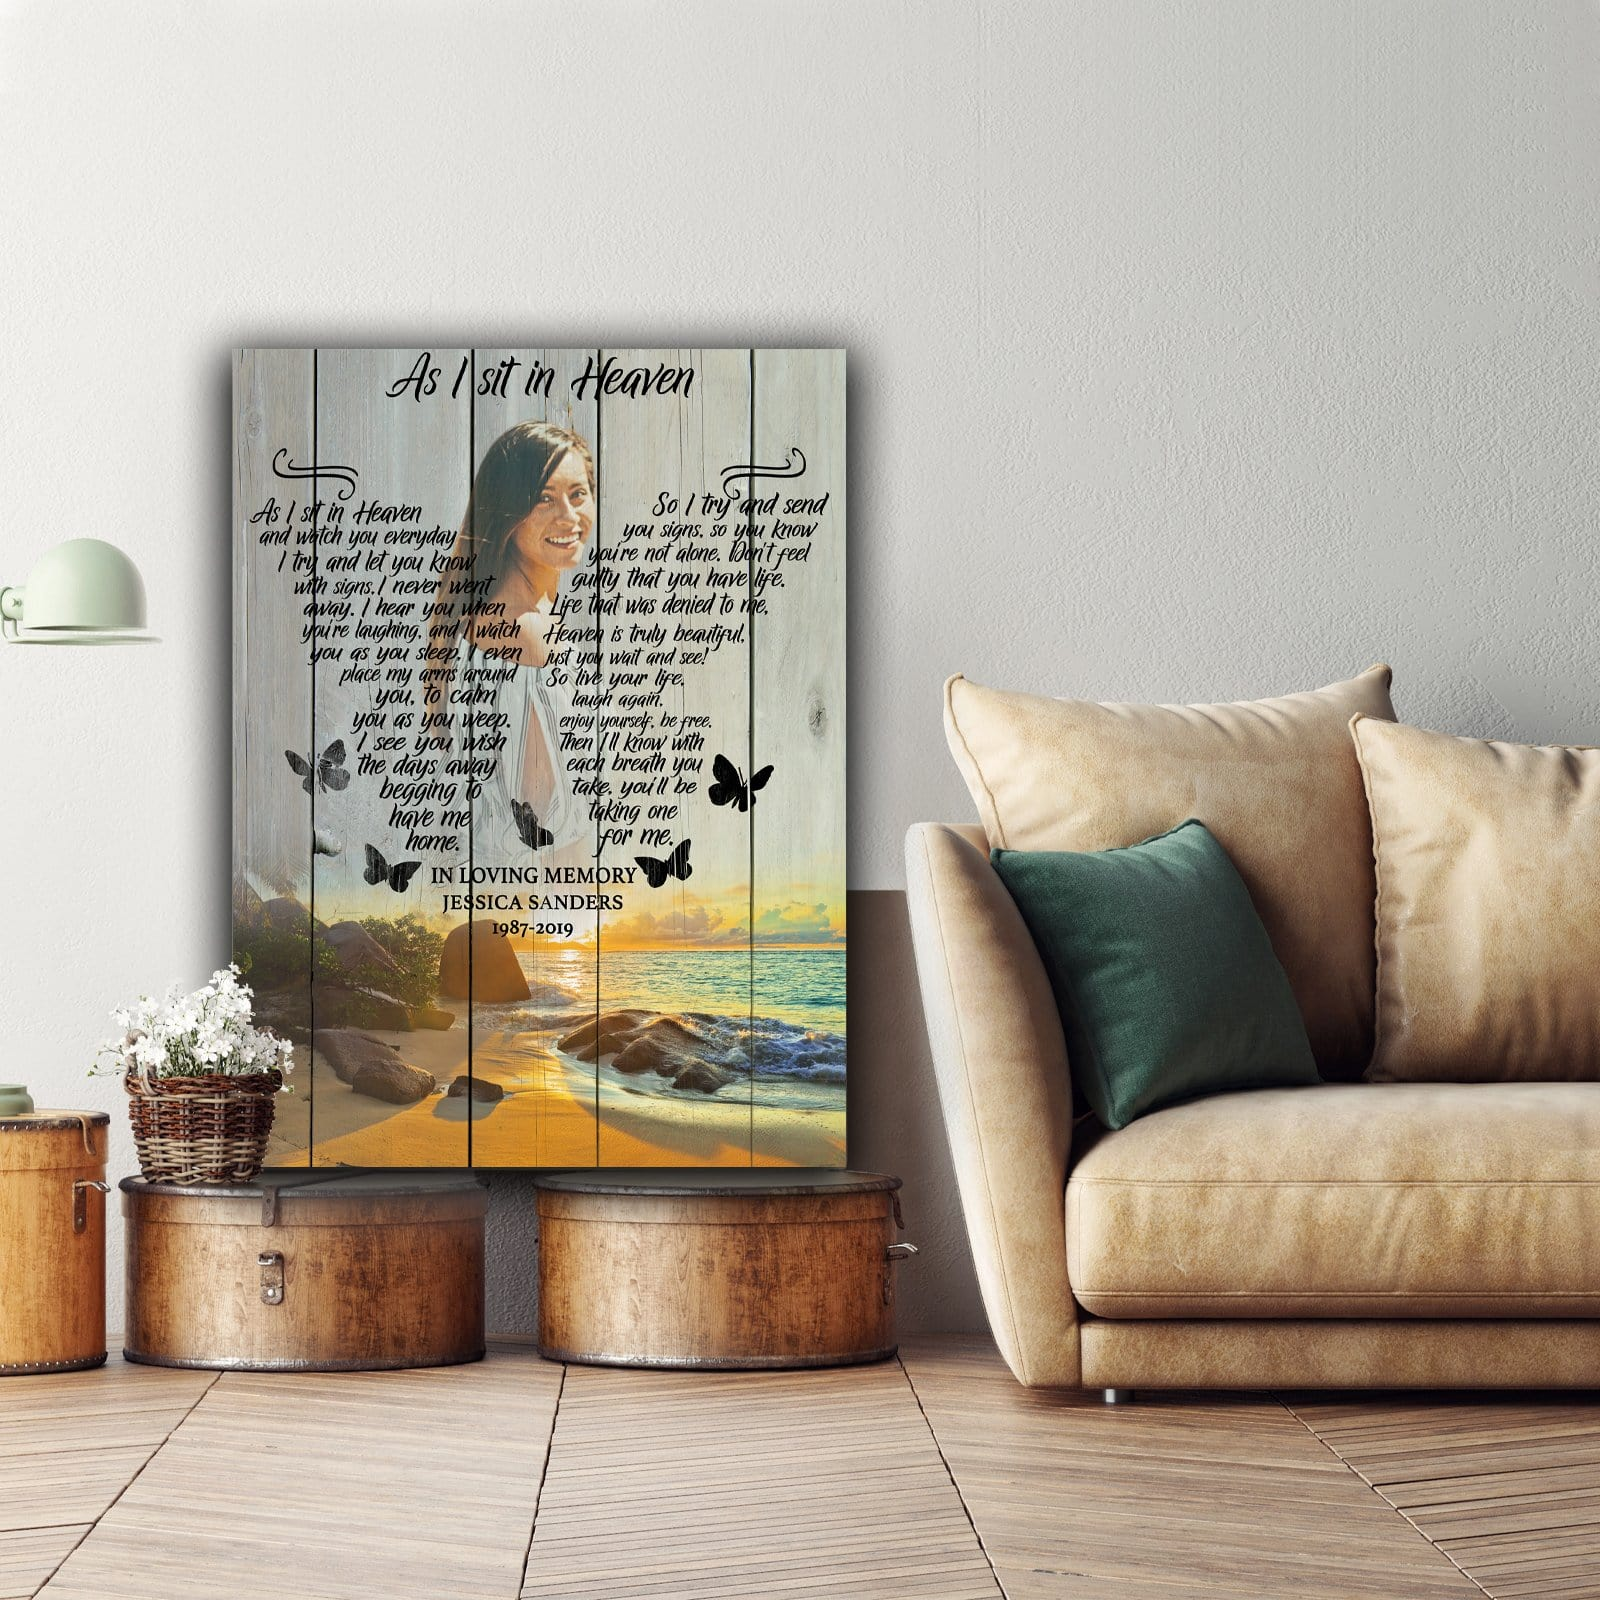 As I Sit In Heaven Blue Ocean Background - Personalized Canvas